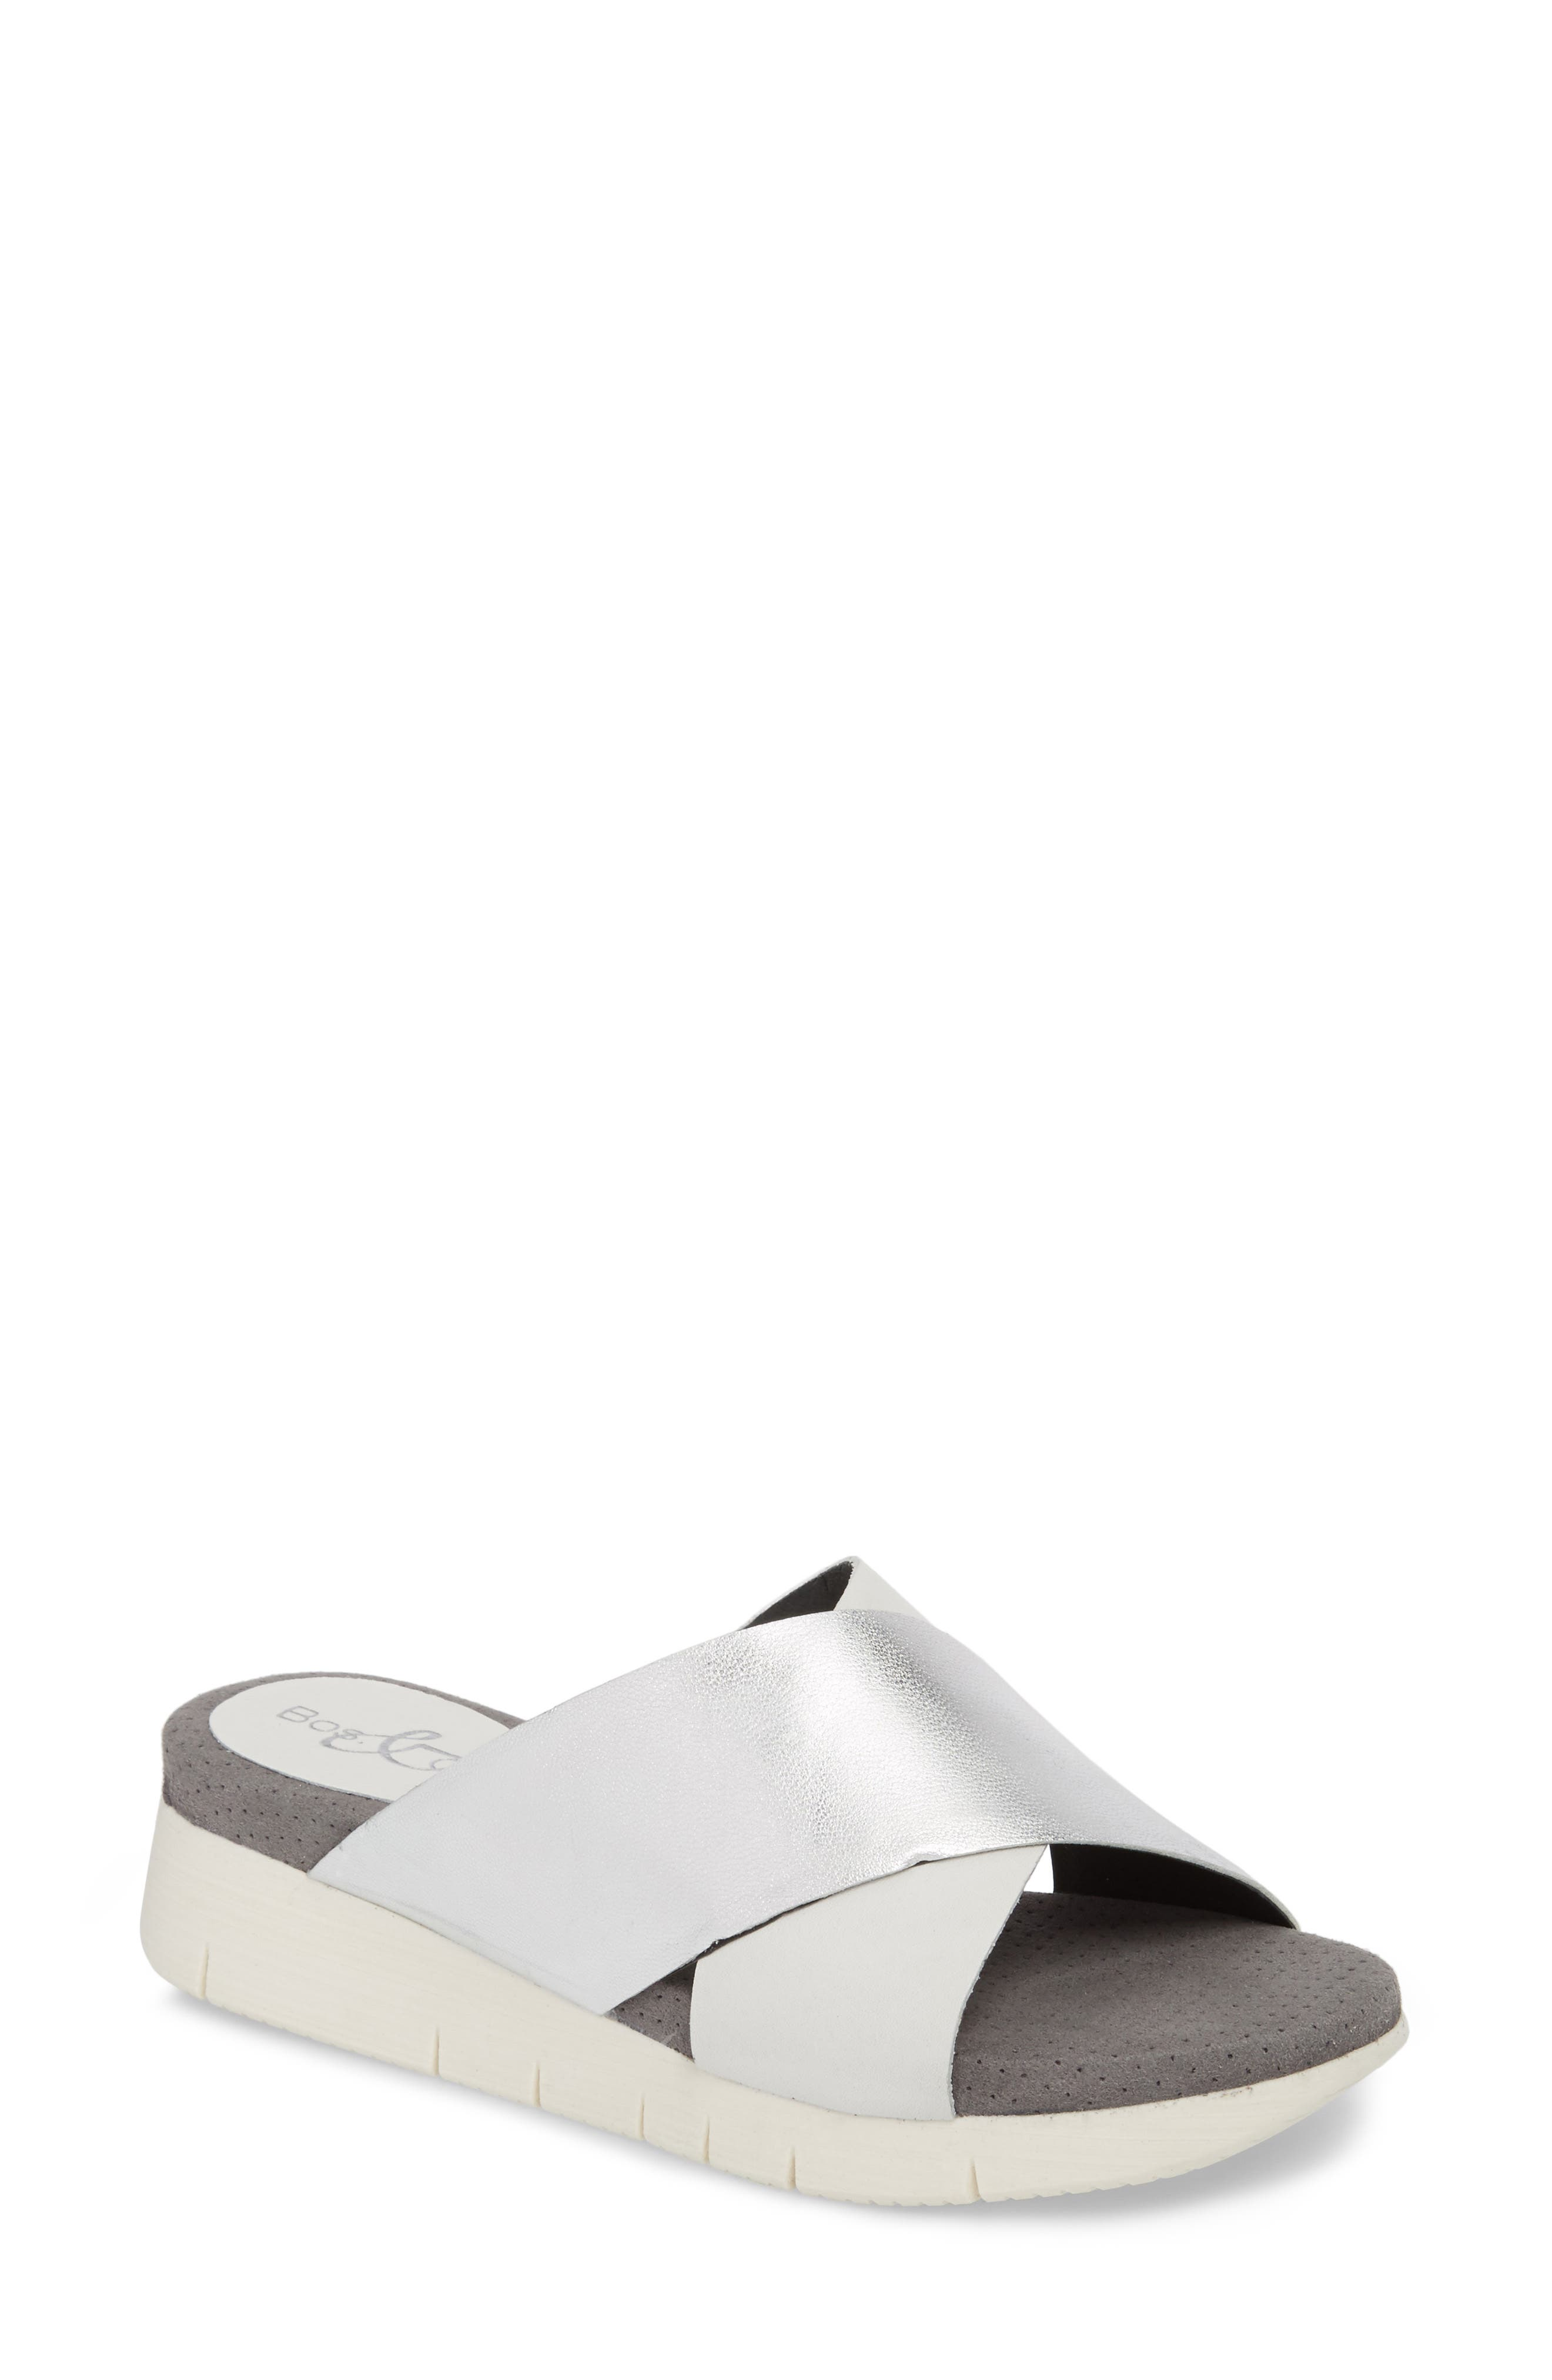 Piney Slide Sandal,                         Main,                         color, White/ Silver Leather